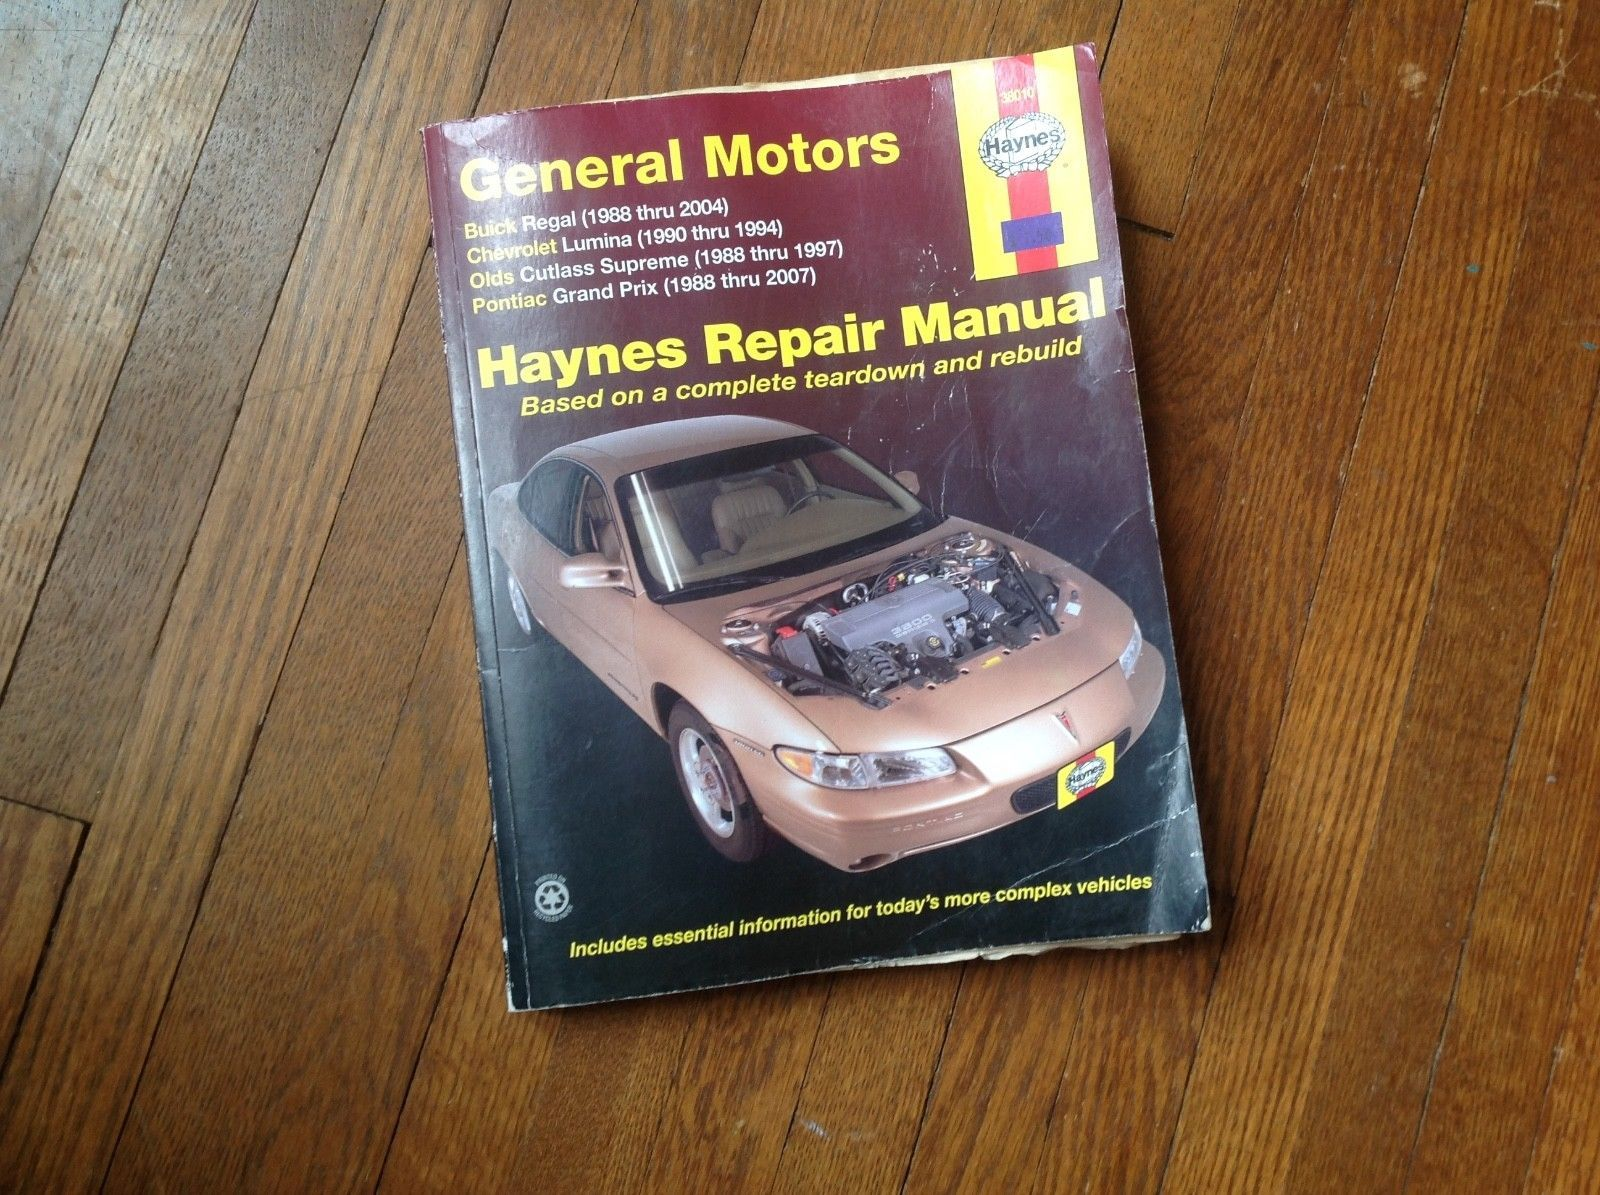 haynes repair manual 38010 general motors and 50 similar items rh bonanza com 1986 Buick Regal 1986 Buick Regal